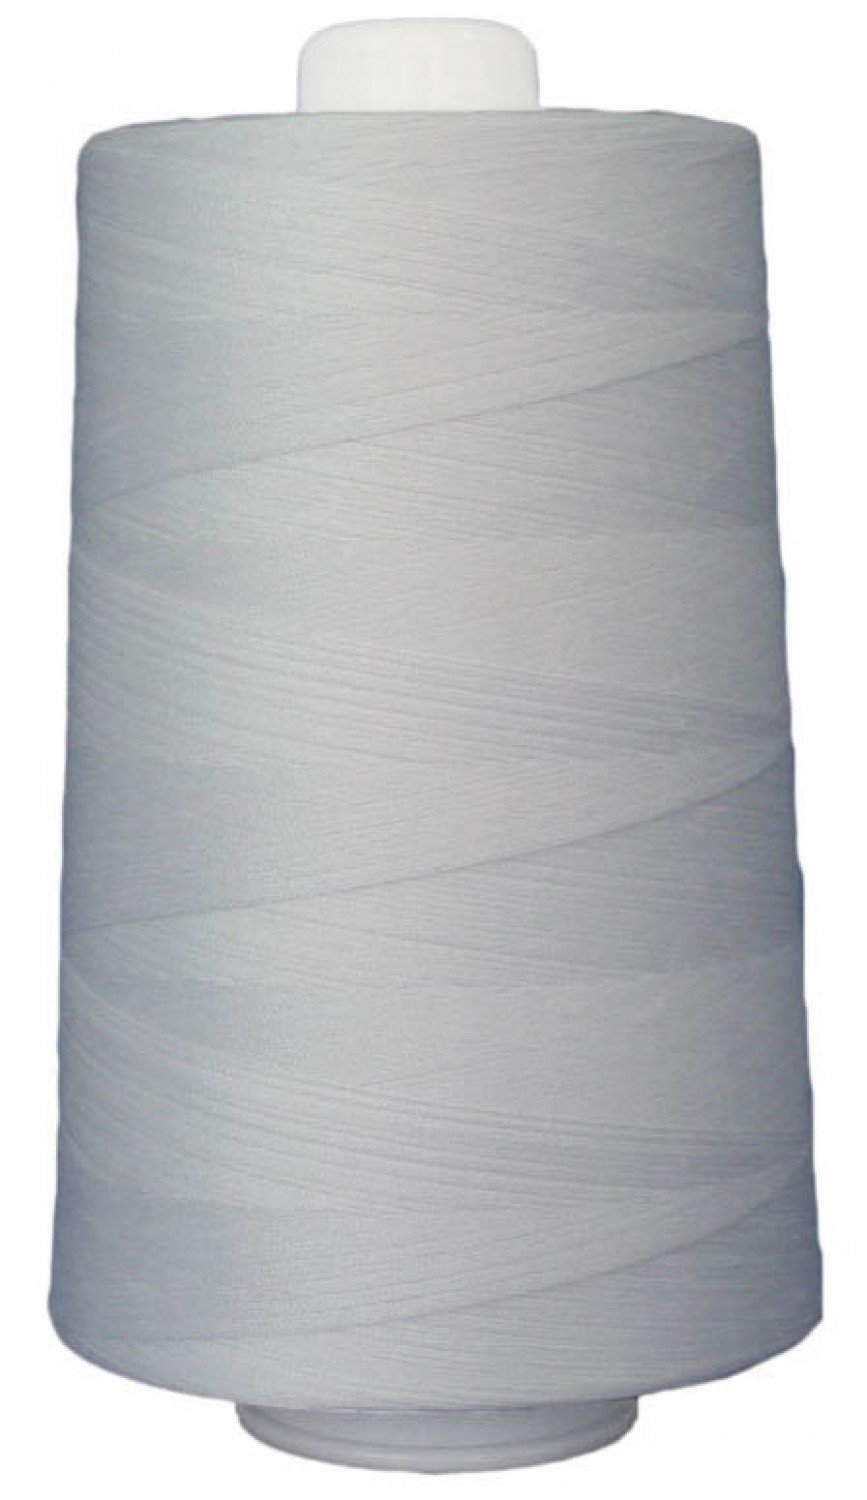 OMNI Polyester Thread 40 wt  6000 yds  3001 Bright White by Superior